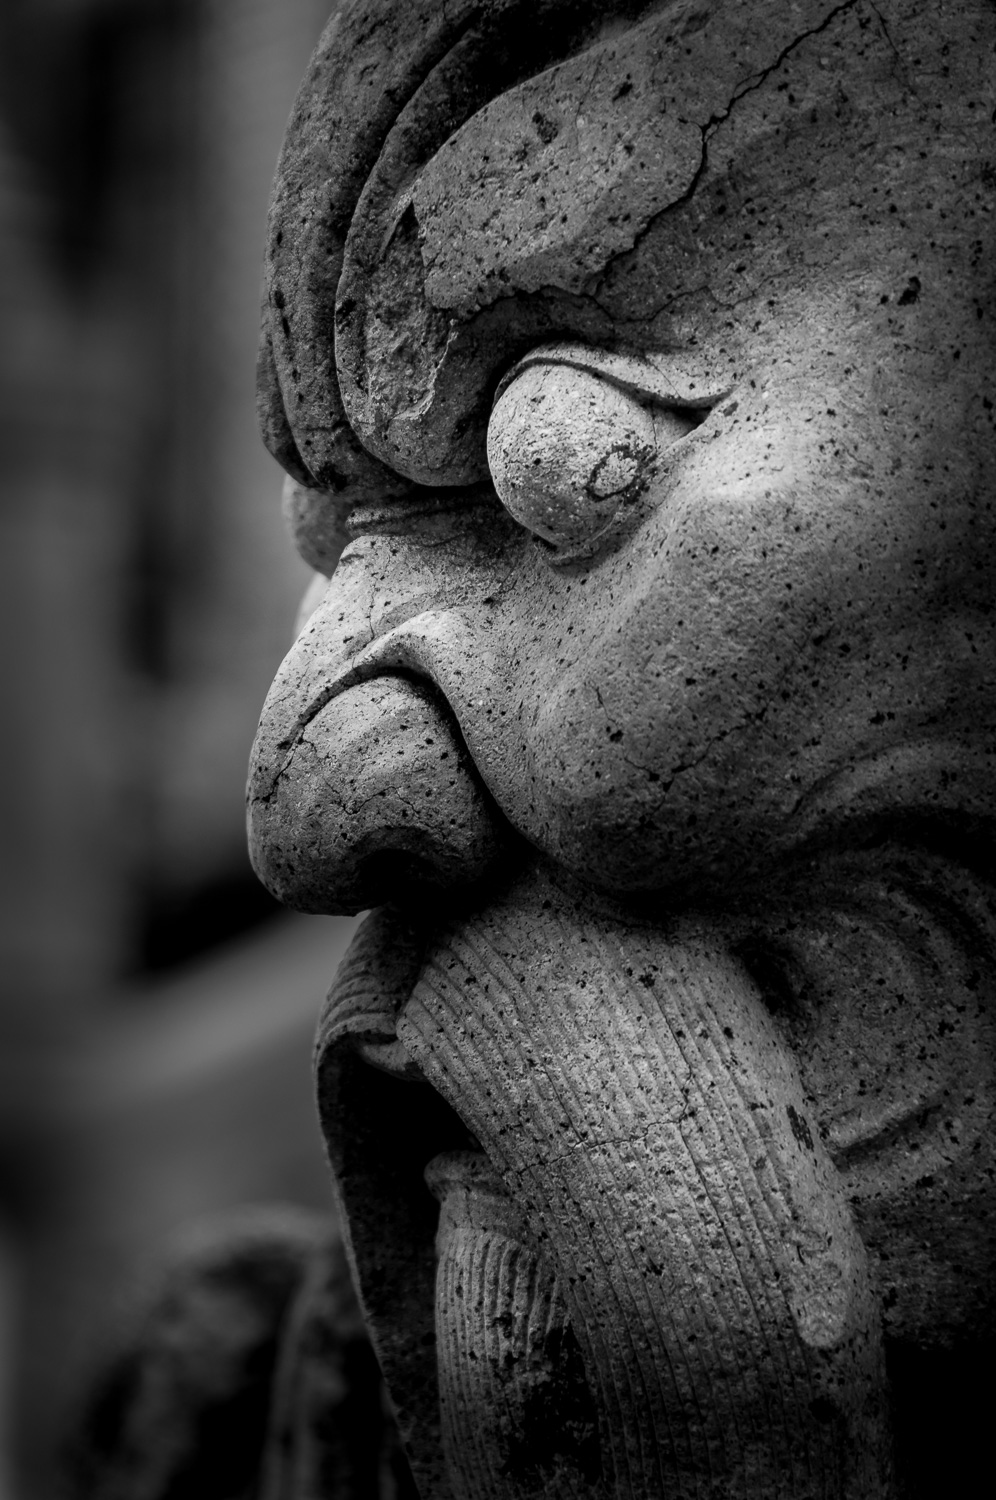 Stone Head Sculpture at the Temple of the Emerald Buddha - Bangkok